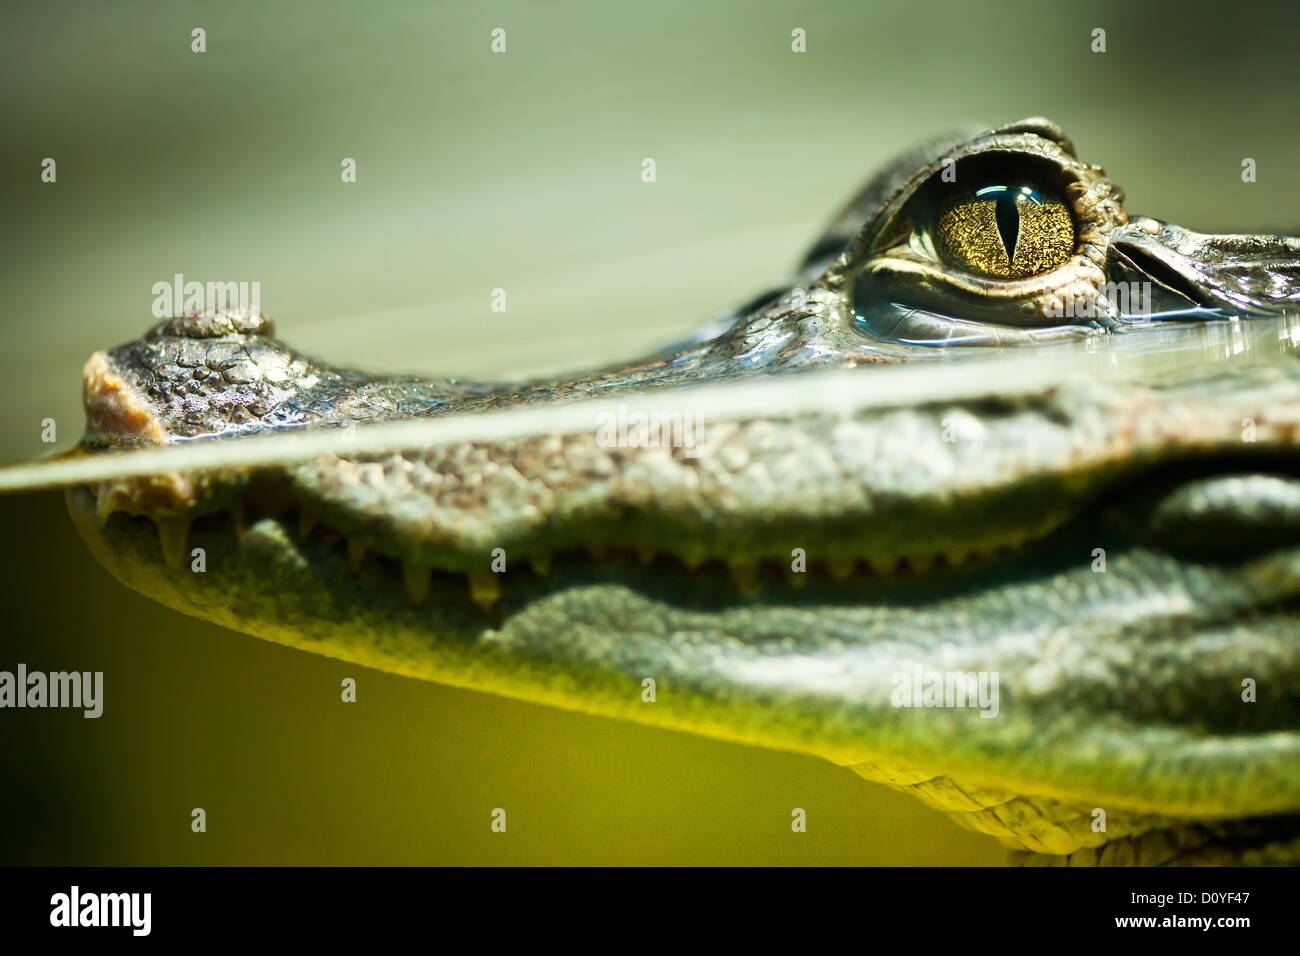 Caiman crocodilusFoto de stock